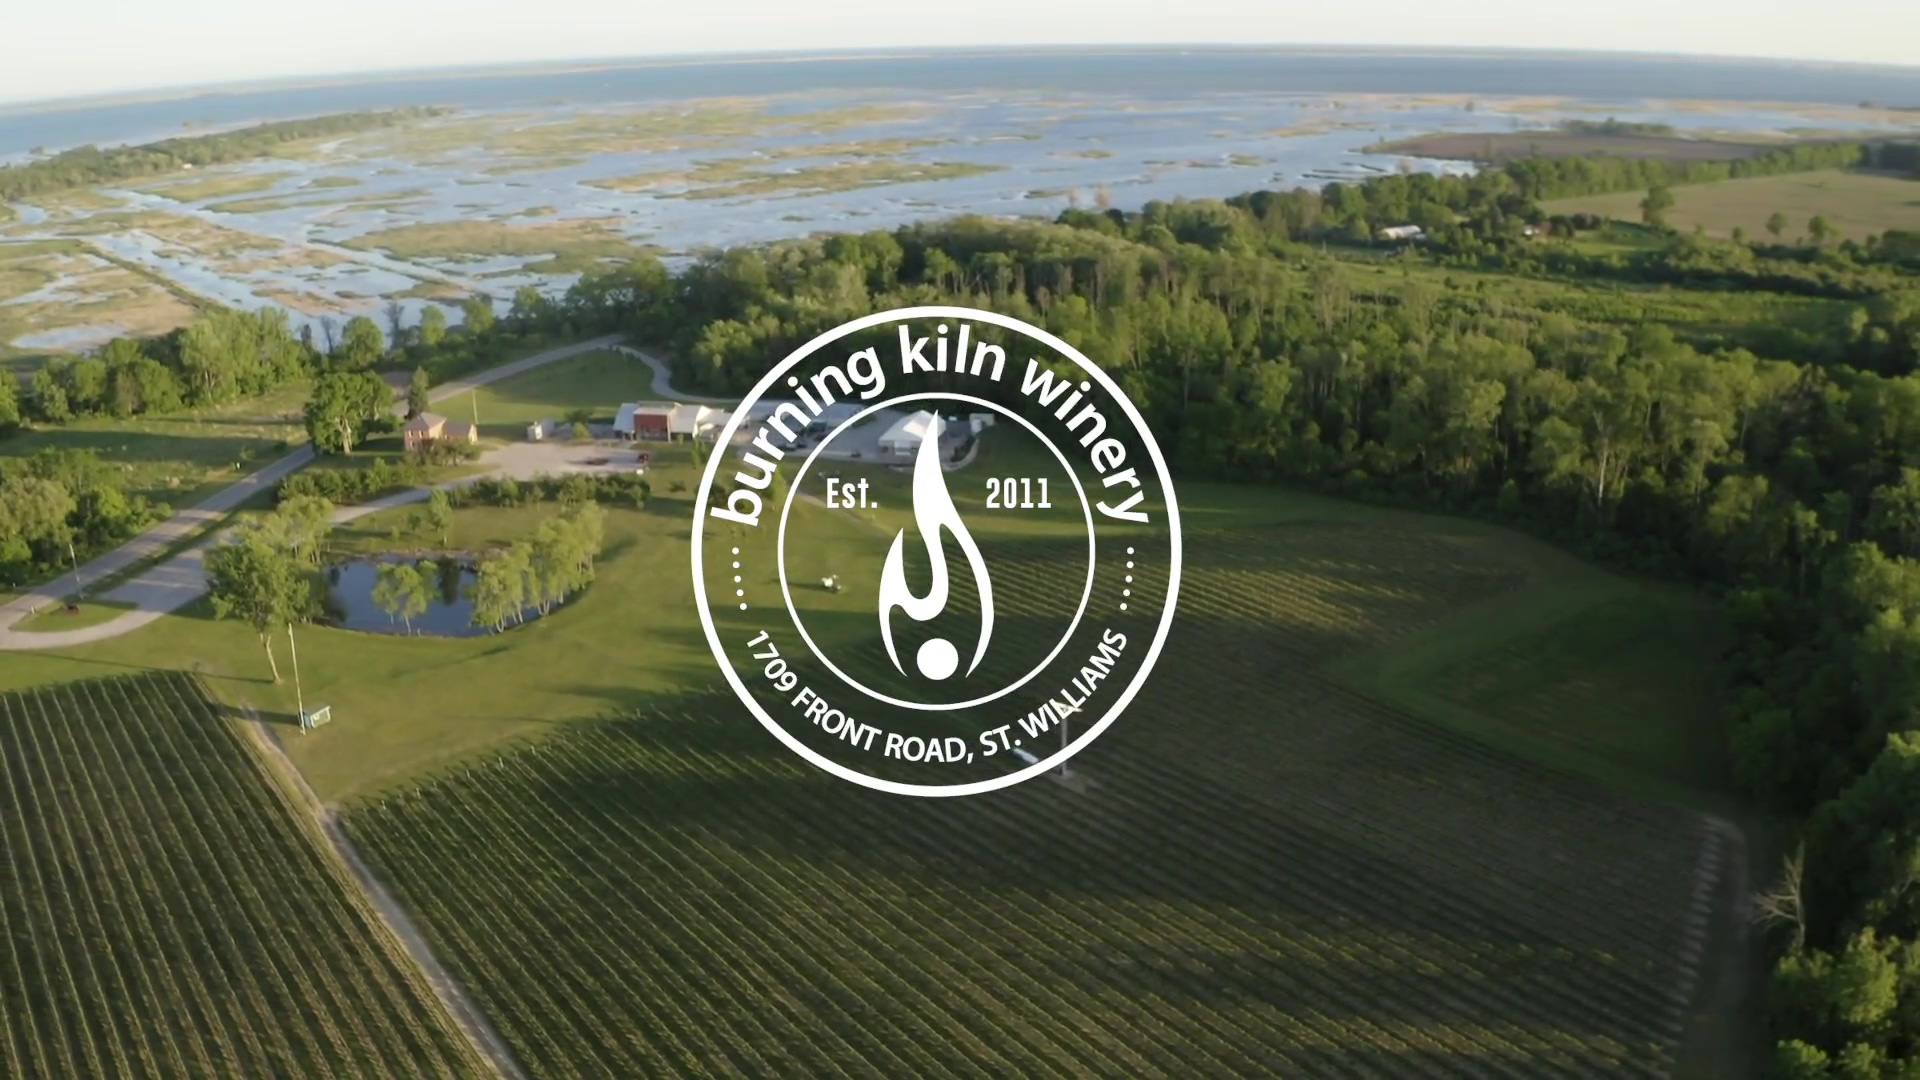 Burning Kiln Winery 2020 (small logo)